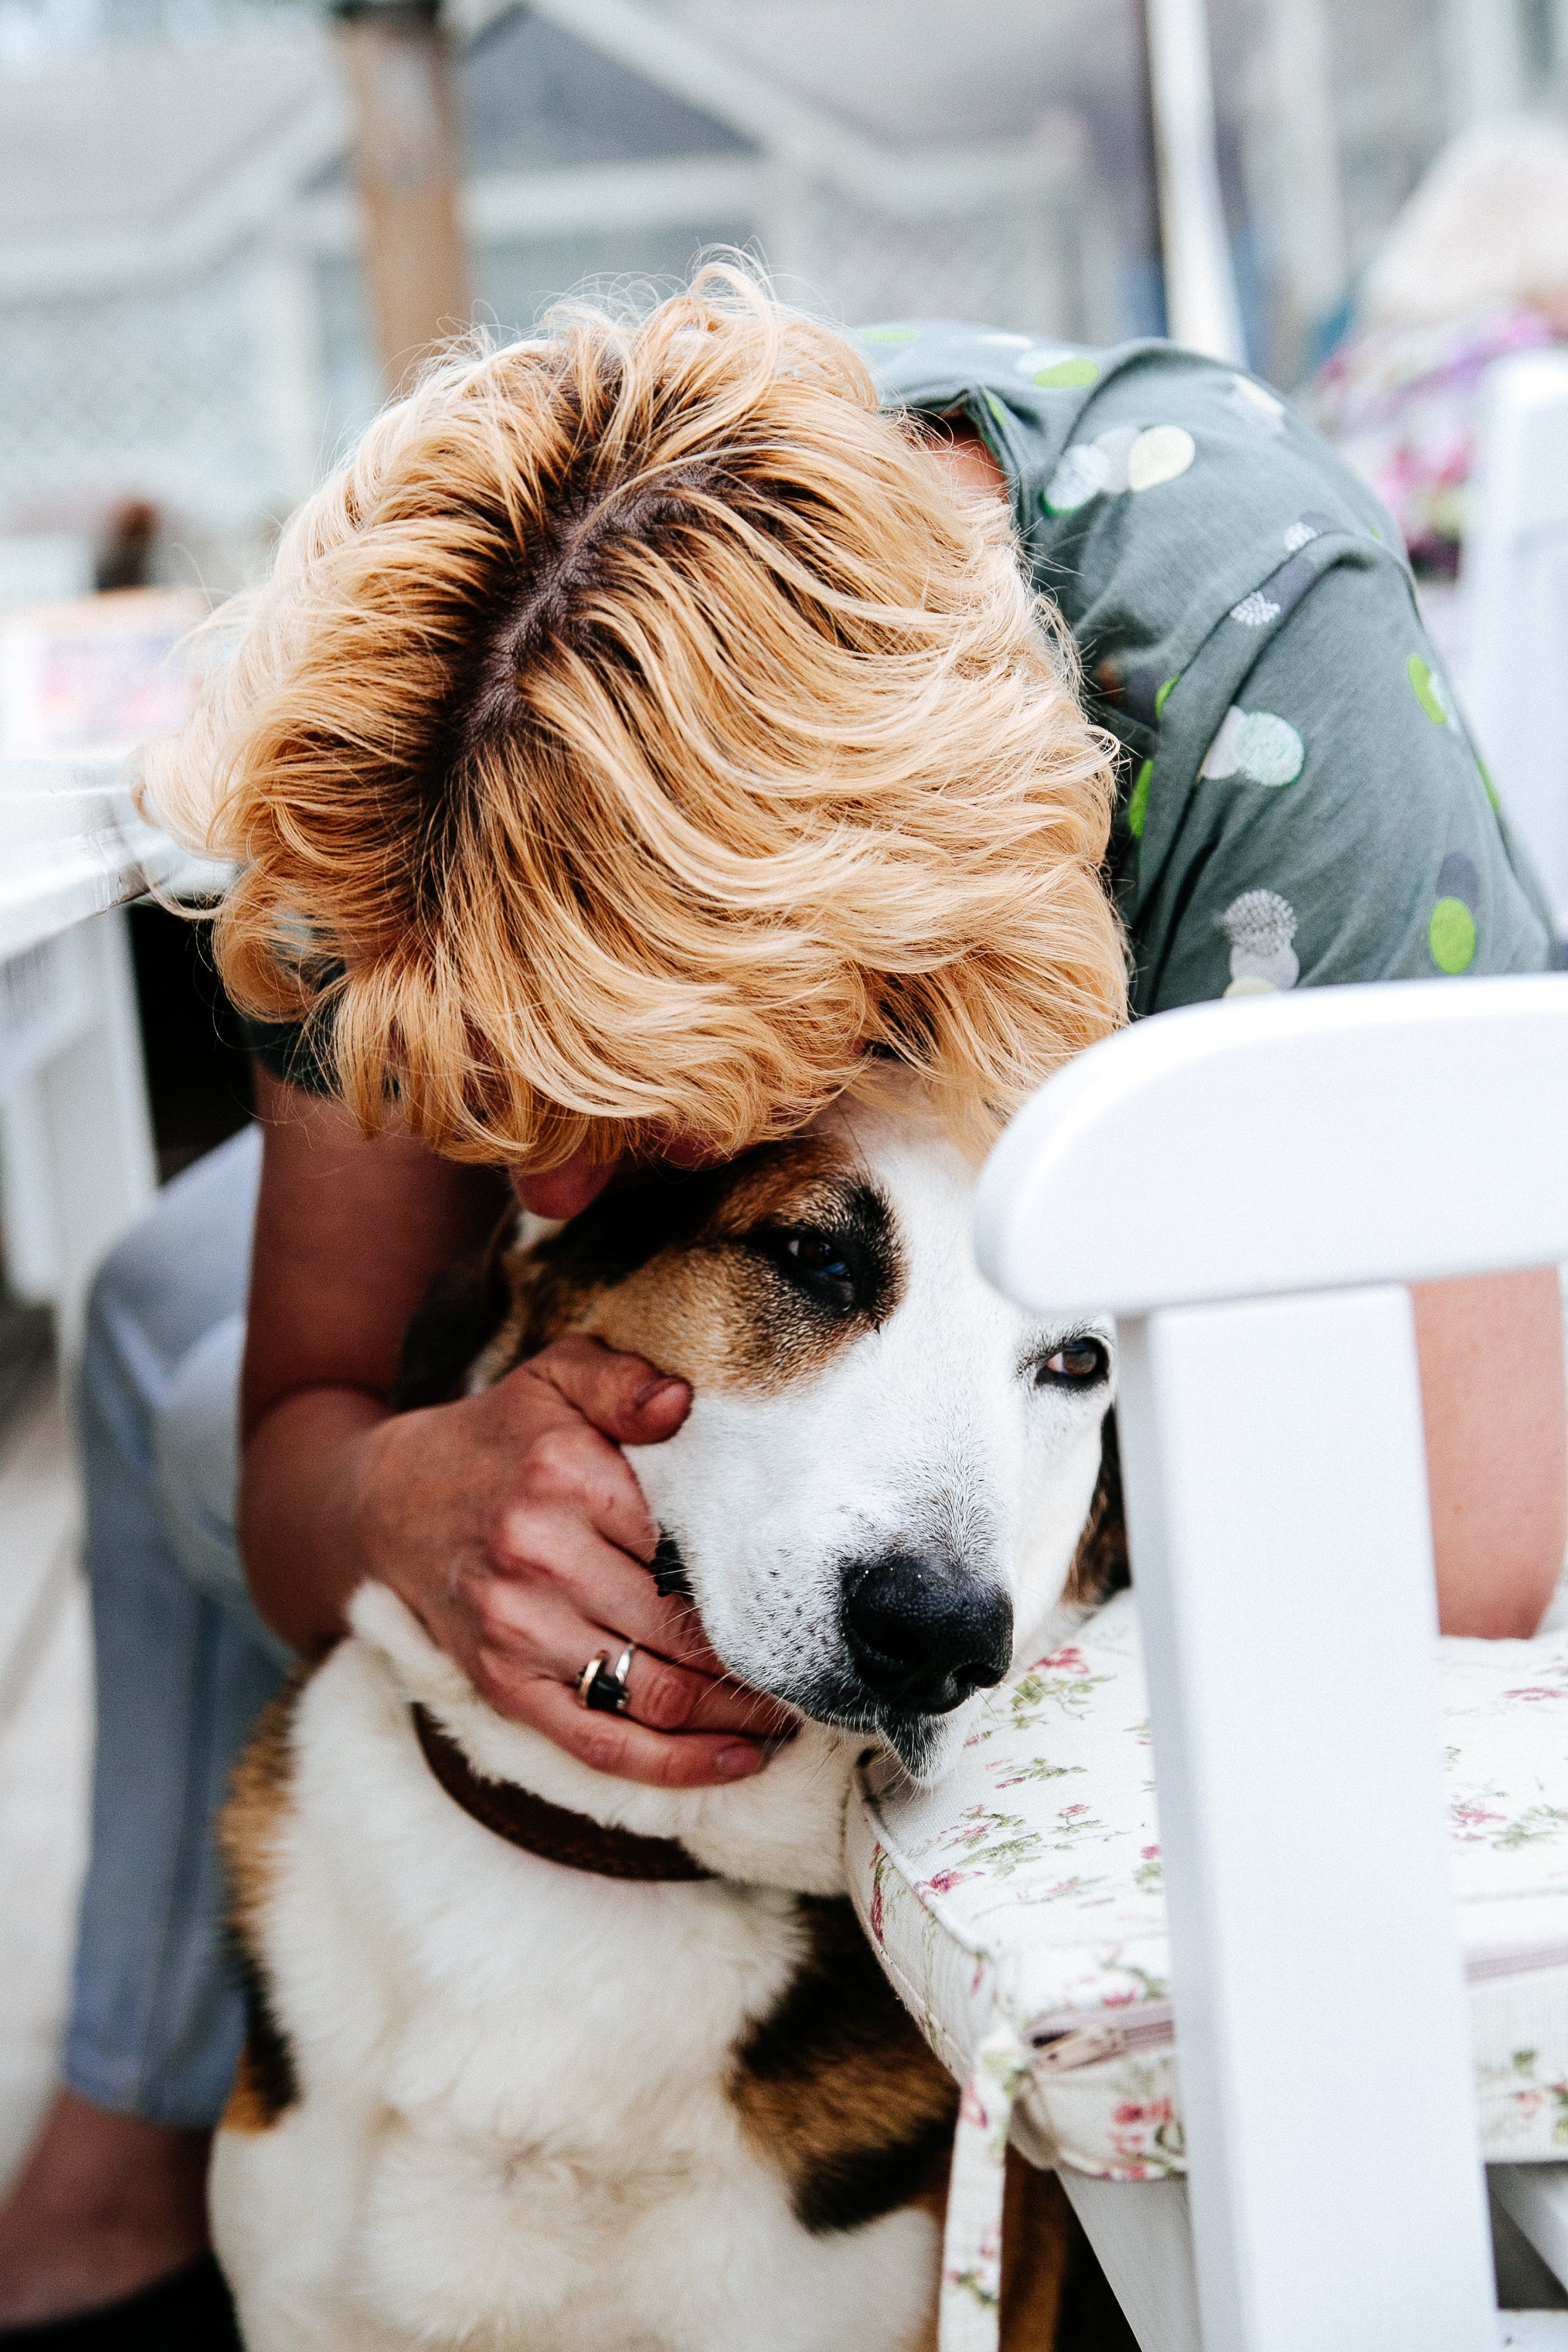 Woman in Gray Floral T-shirt Hugging White and Tan Dog